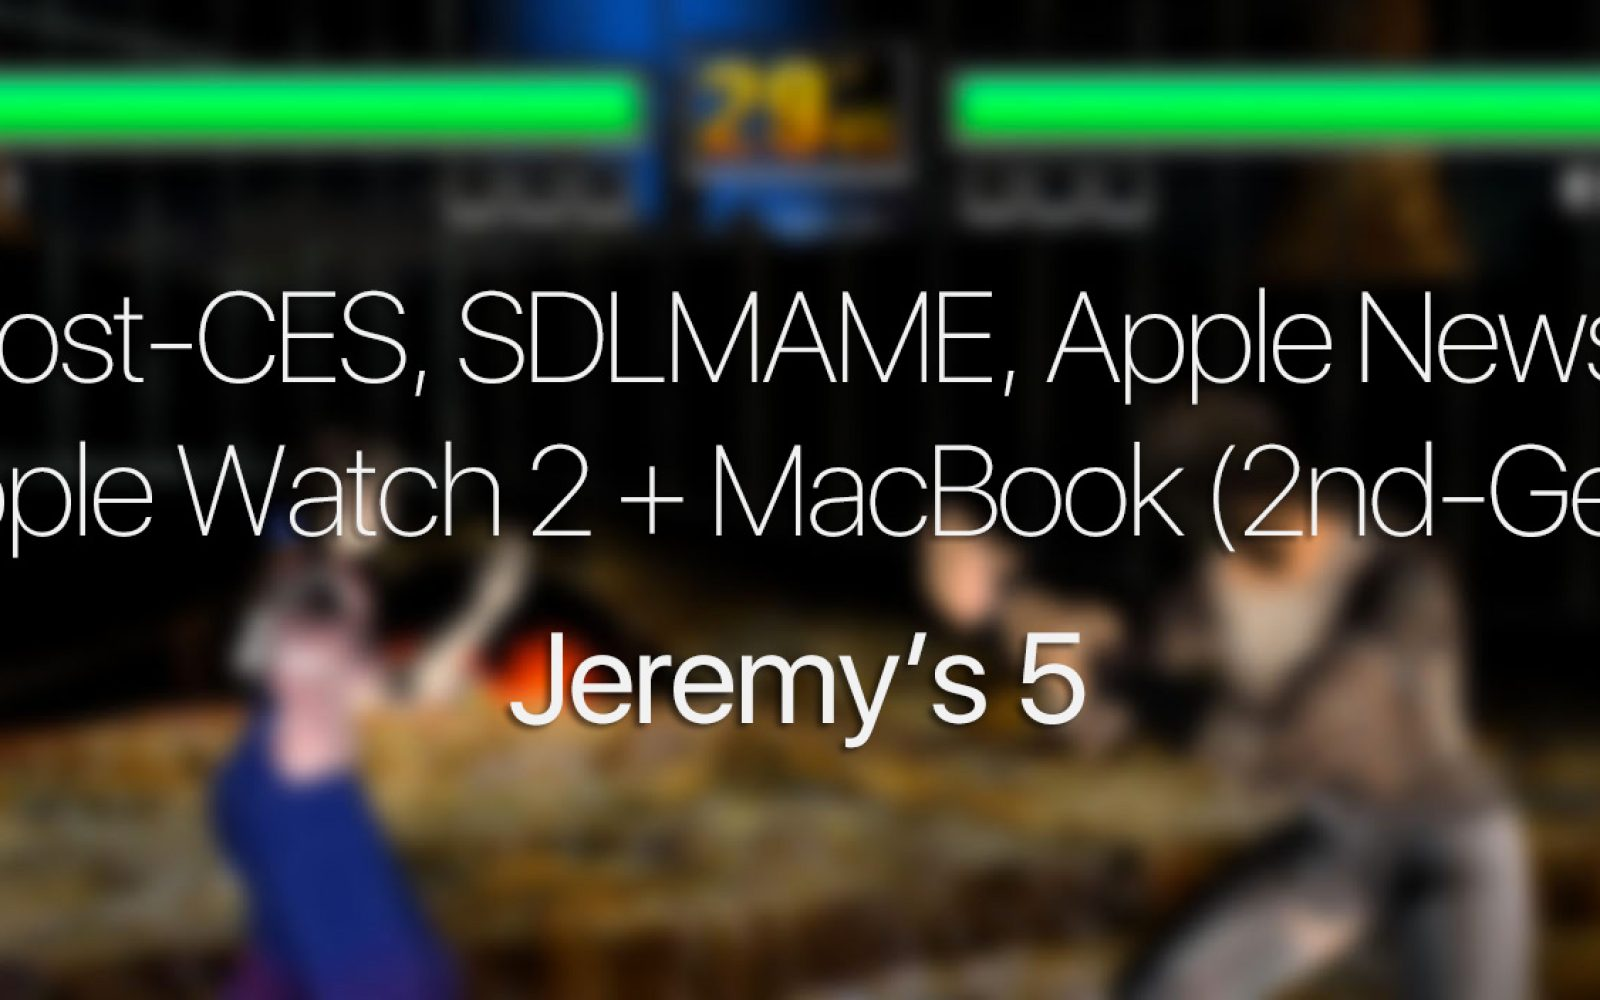 Jeremy's 5: Post-CES, SDLMAME, Apple News, Apple Watch 2 +